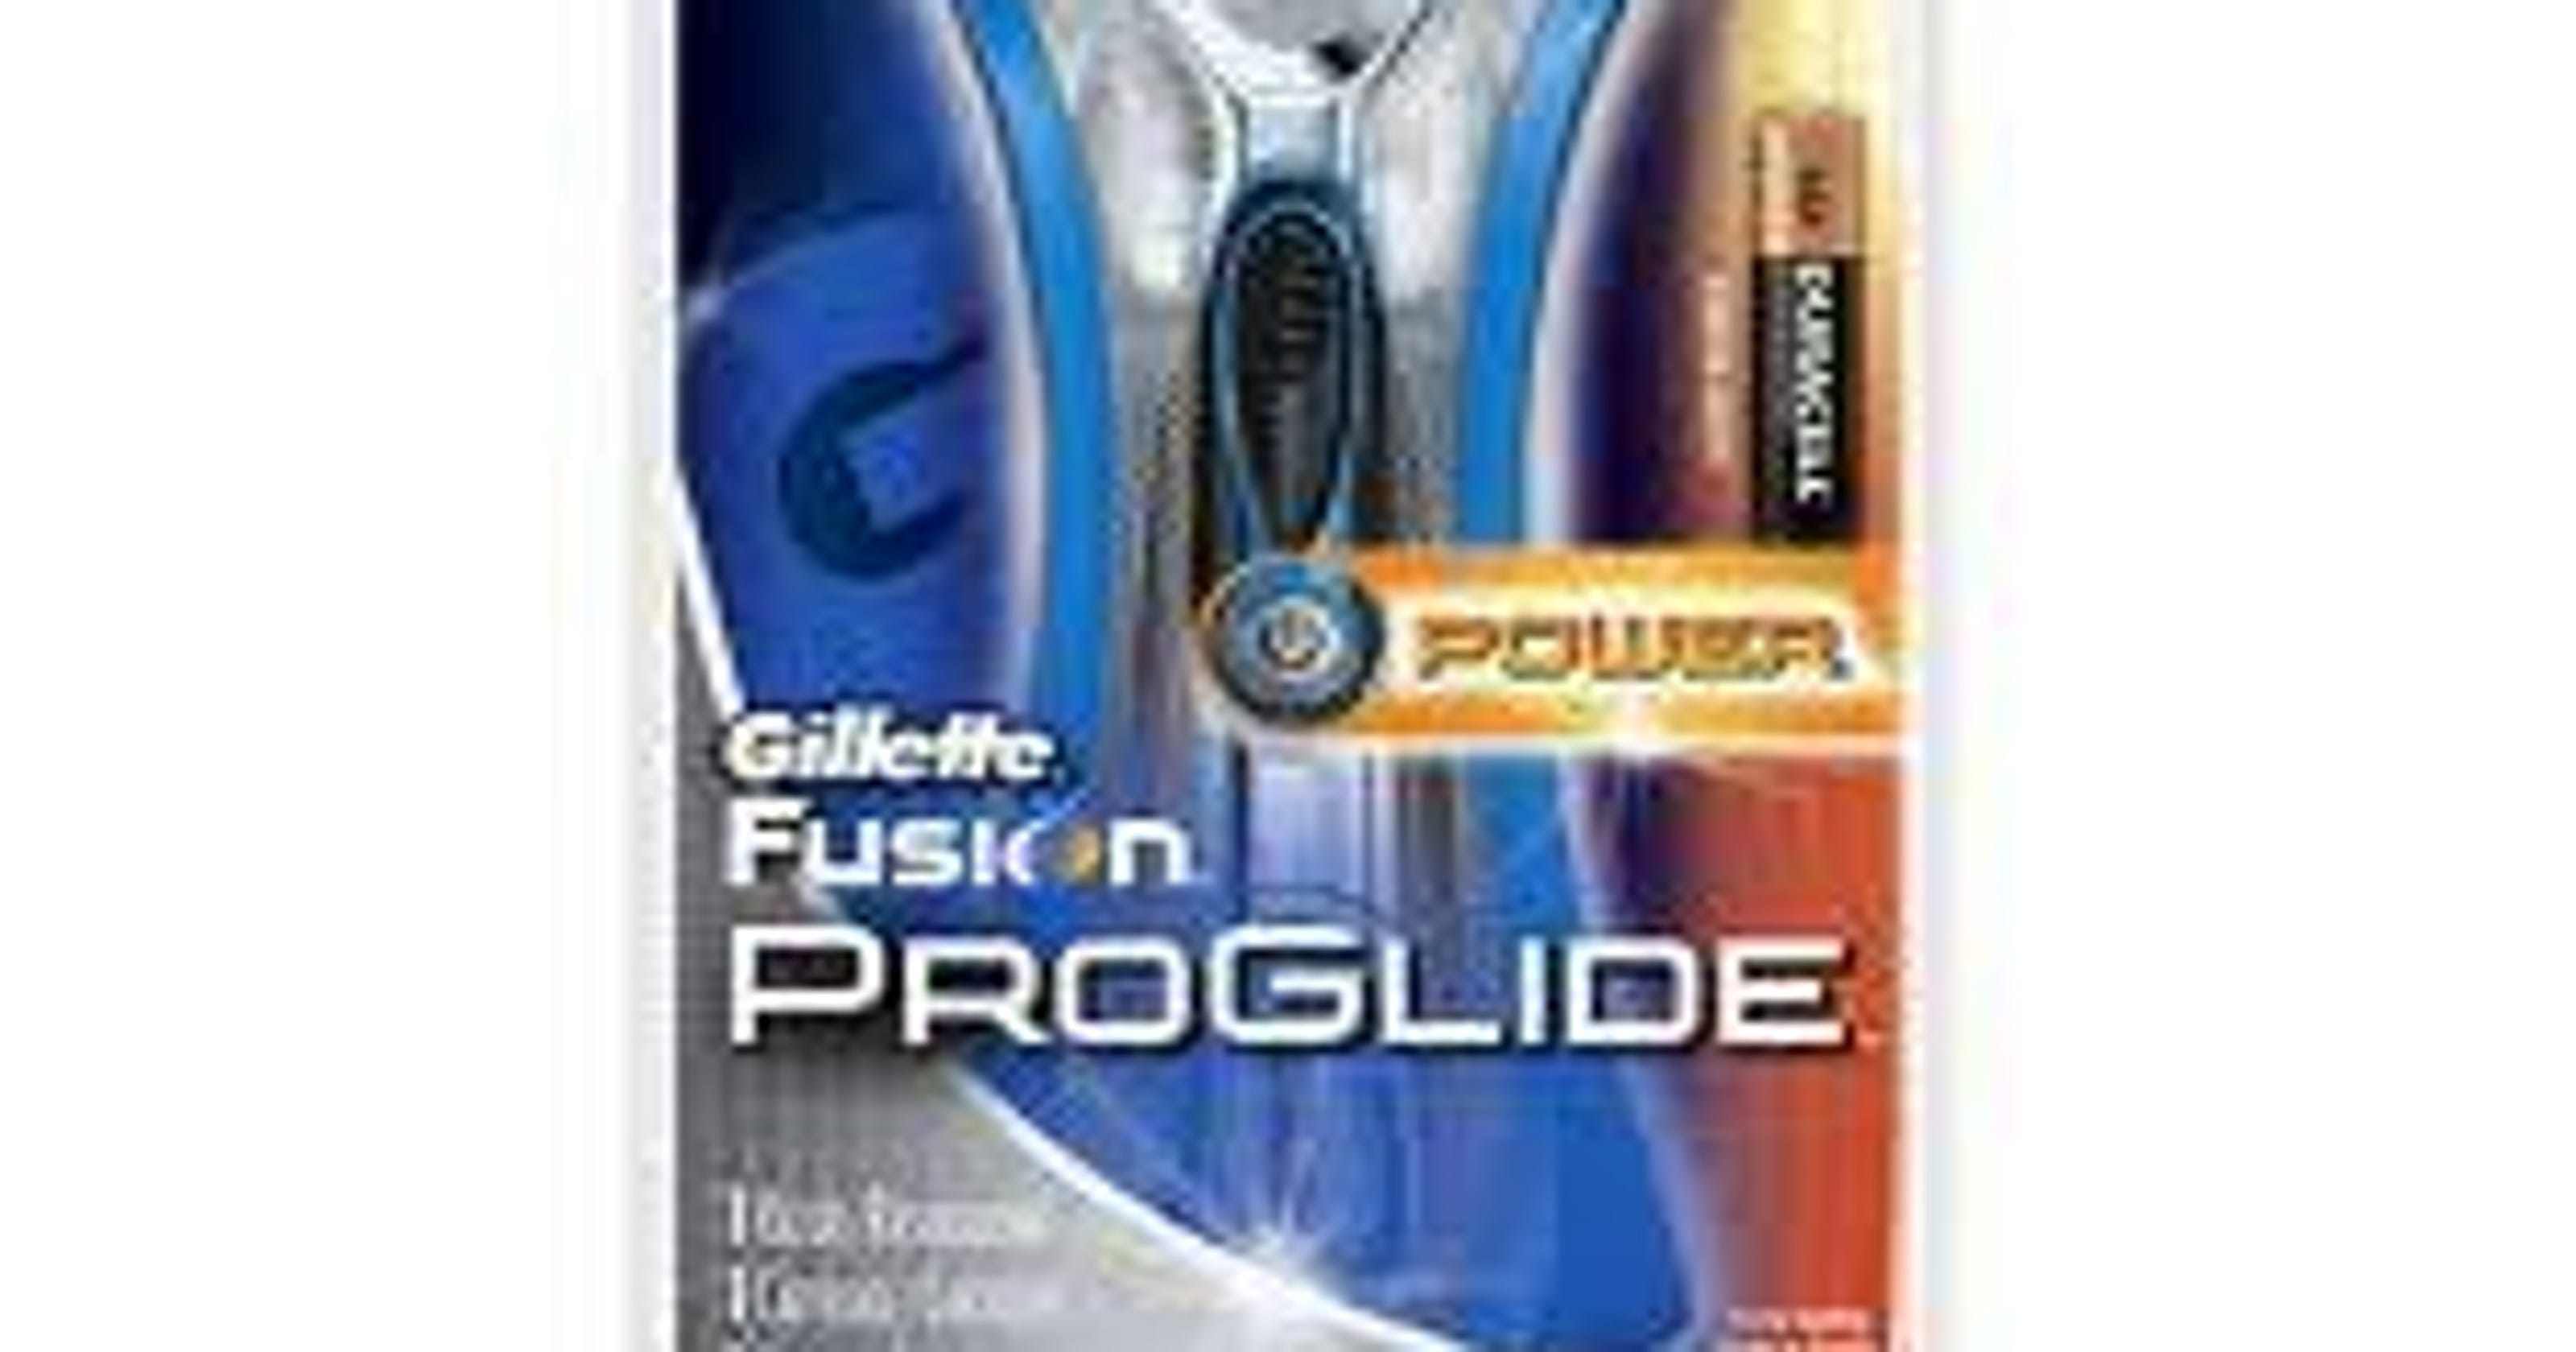 P&G: We're cutting price of Gillette razors